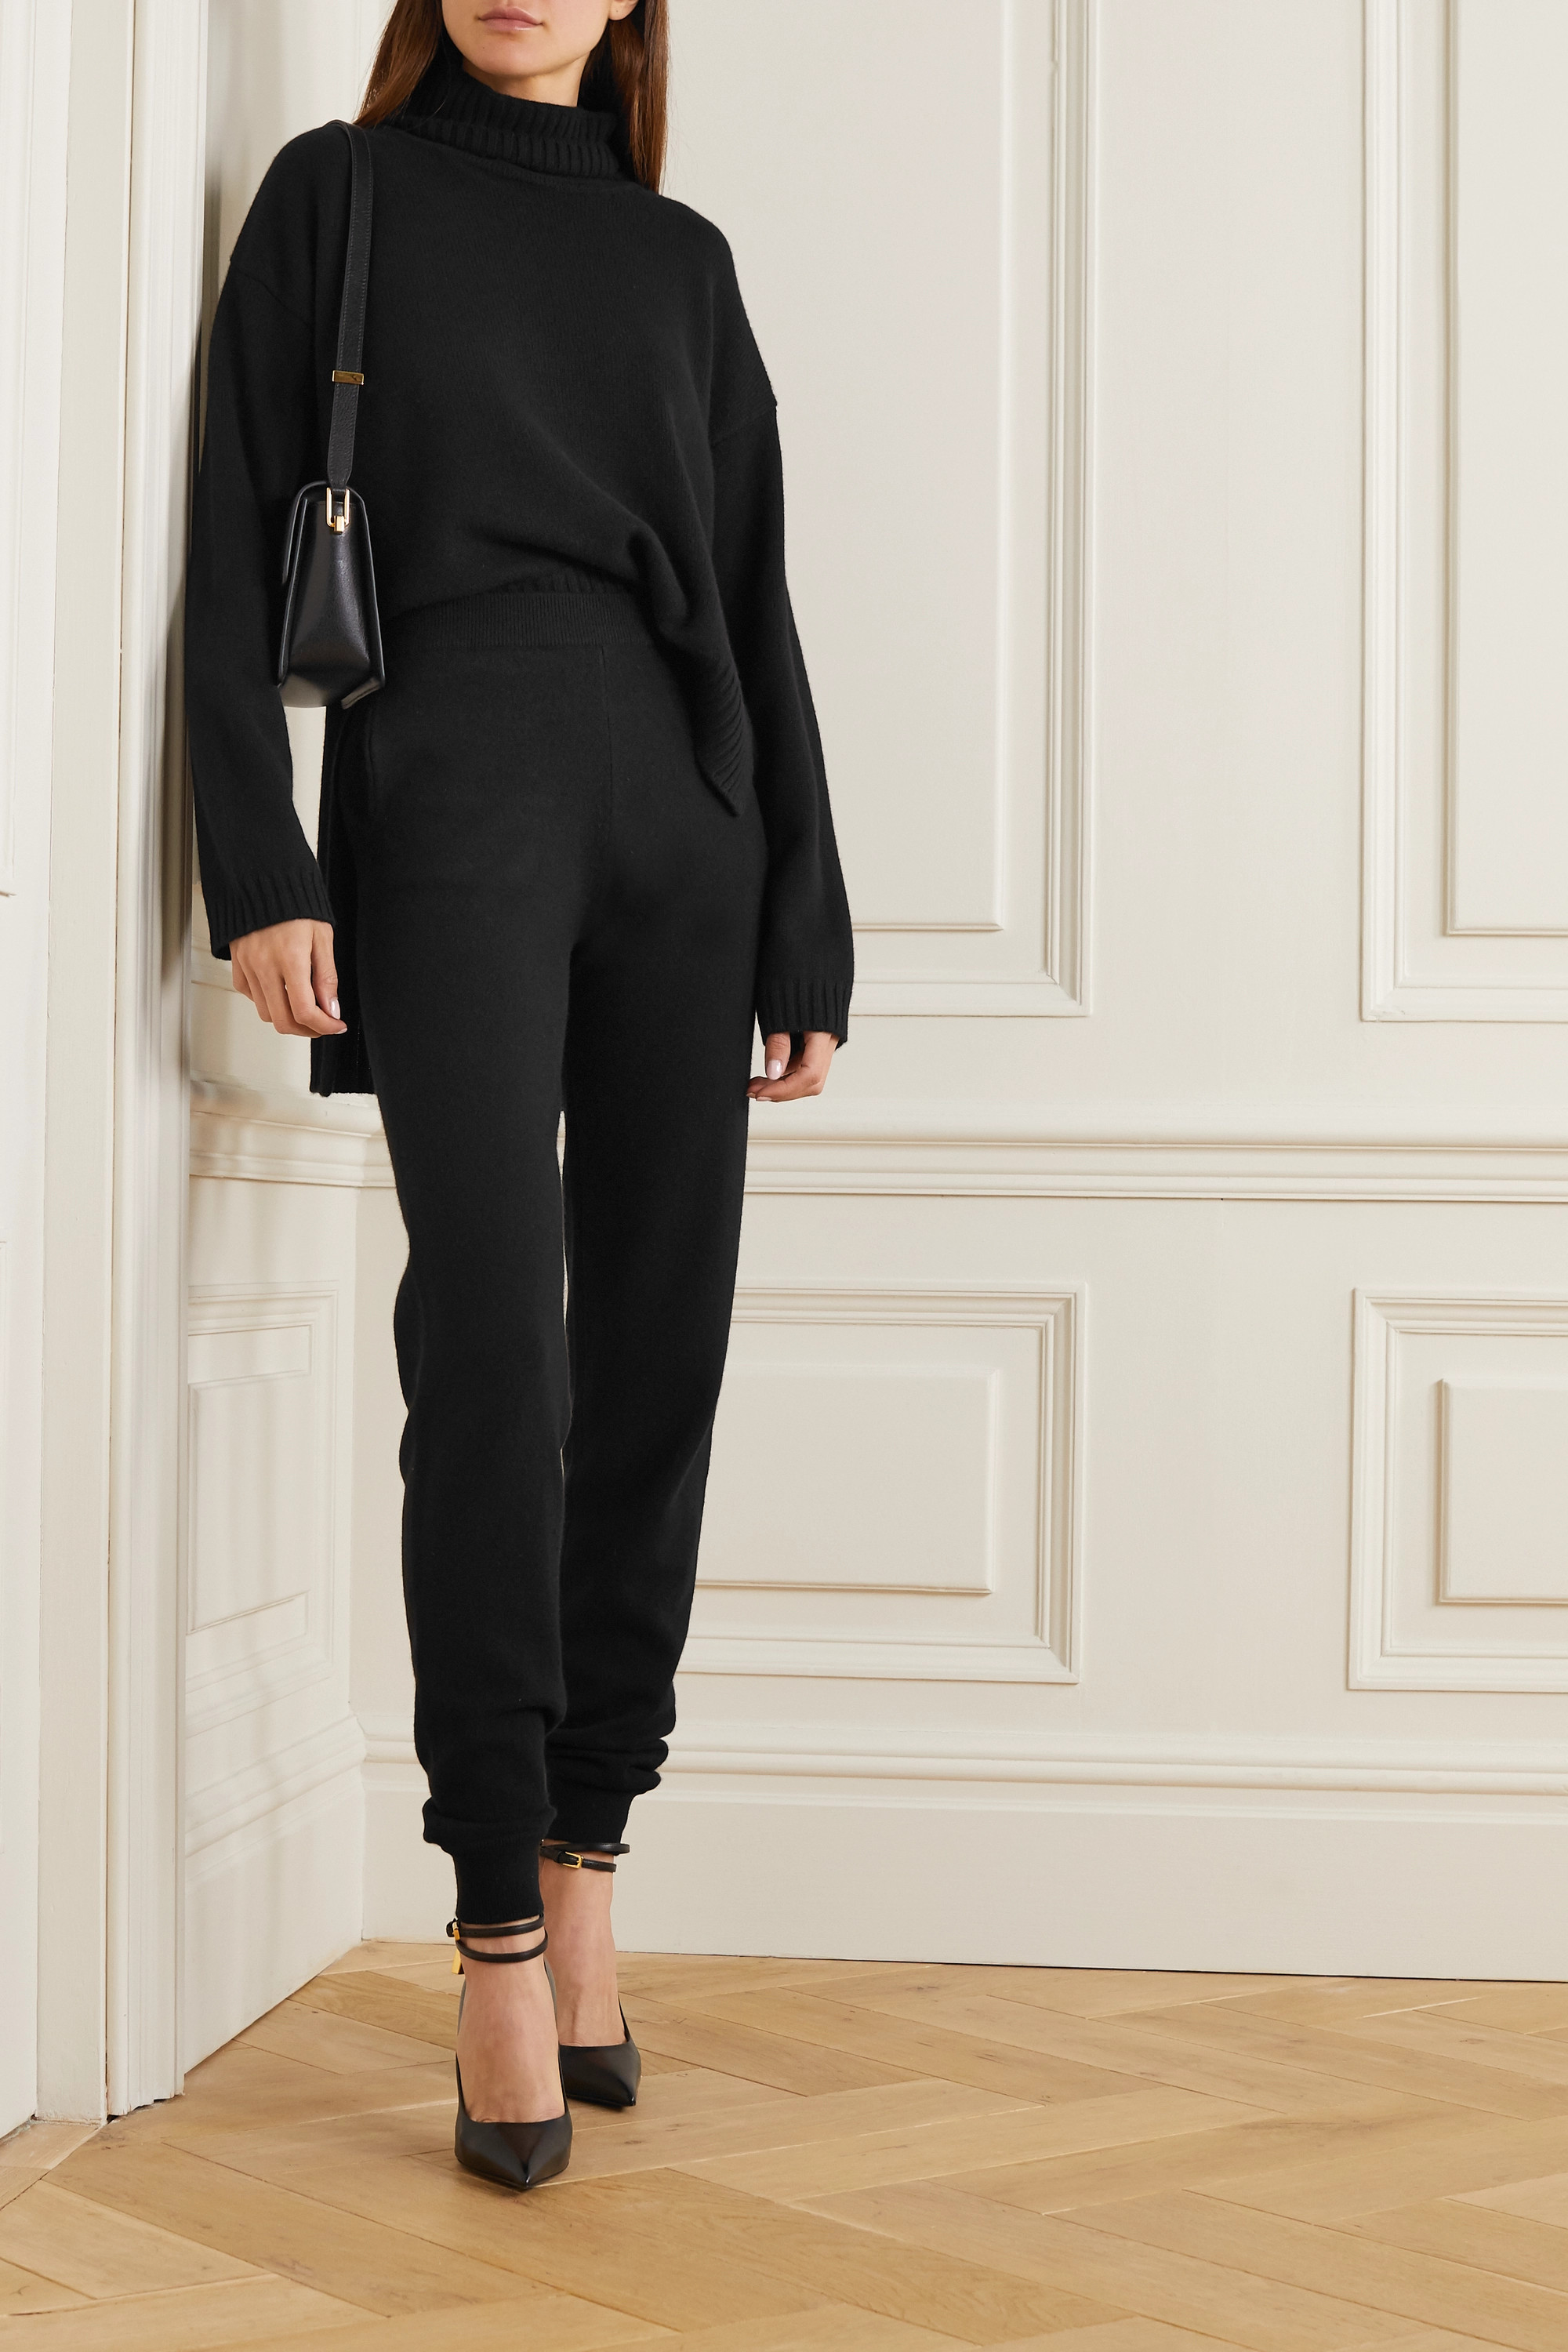 TOM FORD Asymmetric cashmere turtleneck sweater